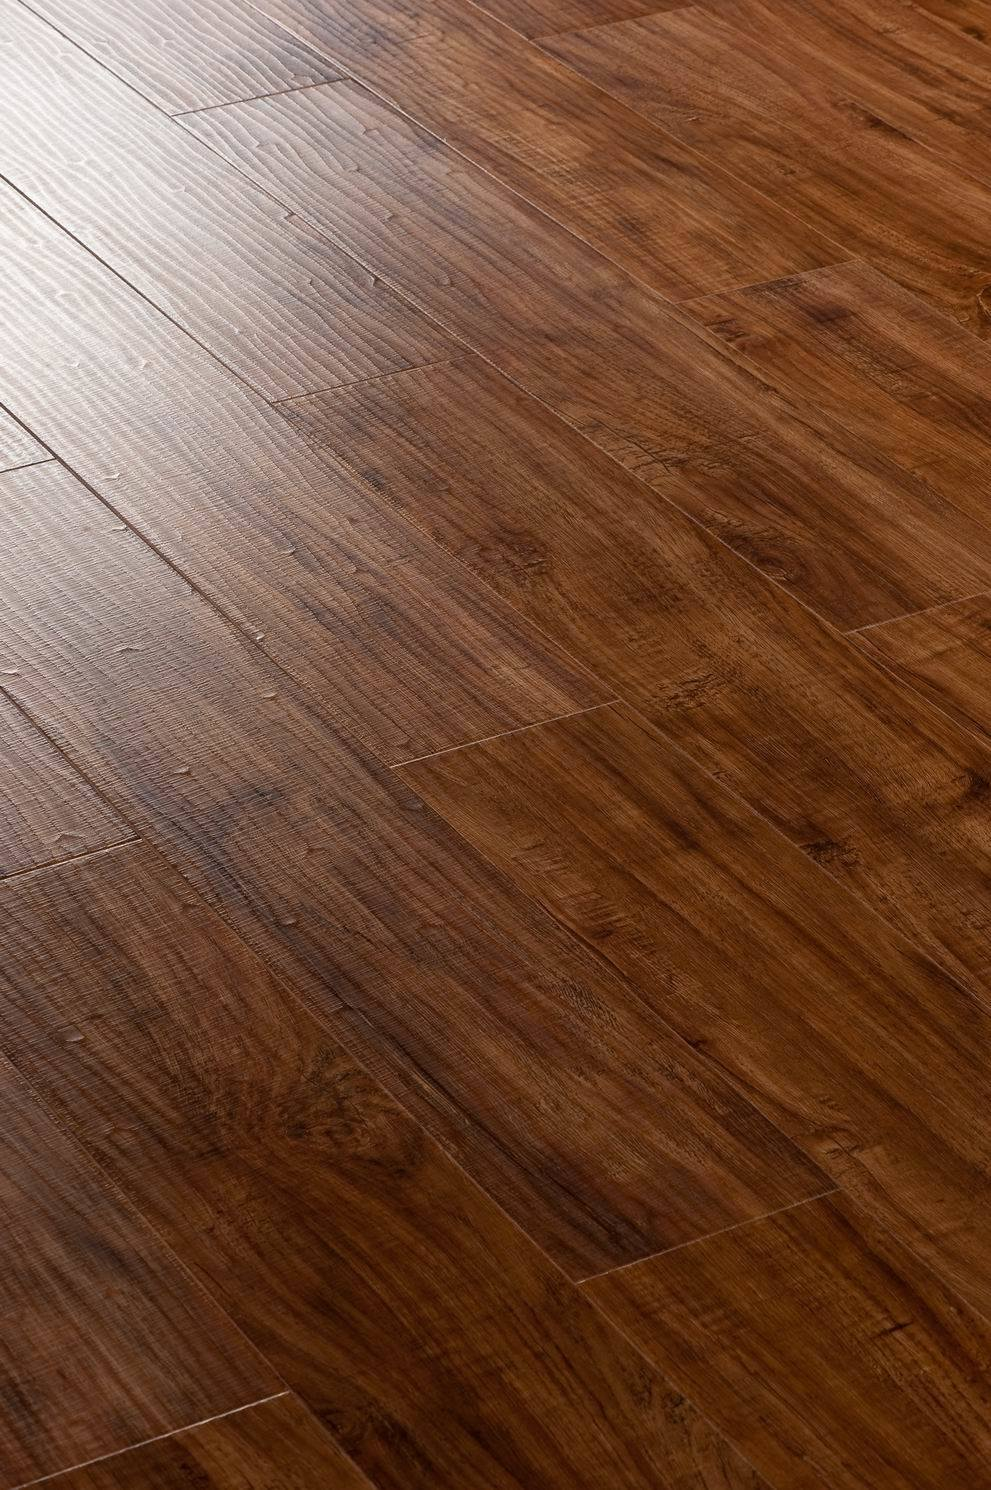 Laminate flooring best hand scraped laminate flooring for Best laminate flooring